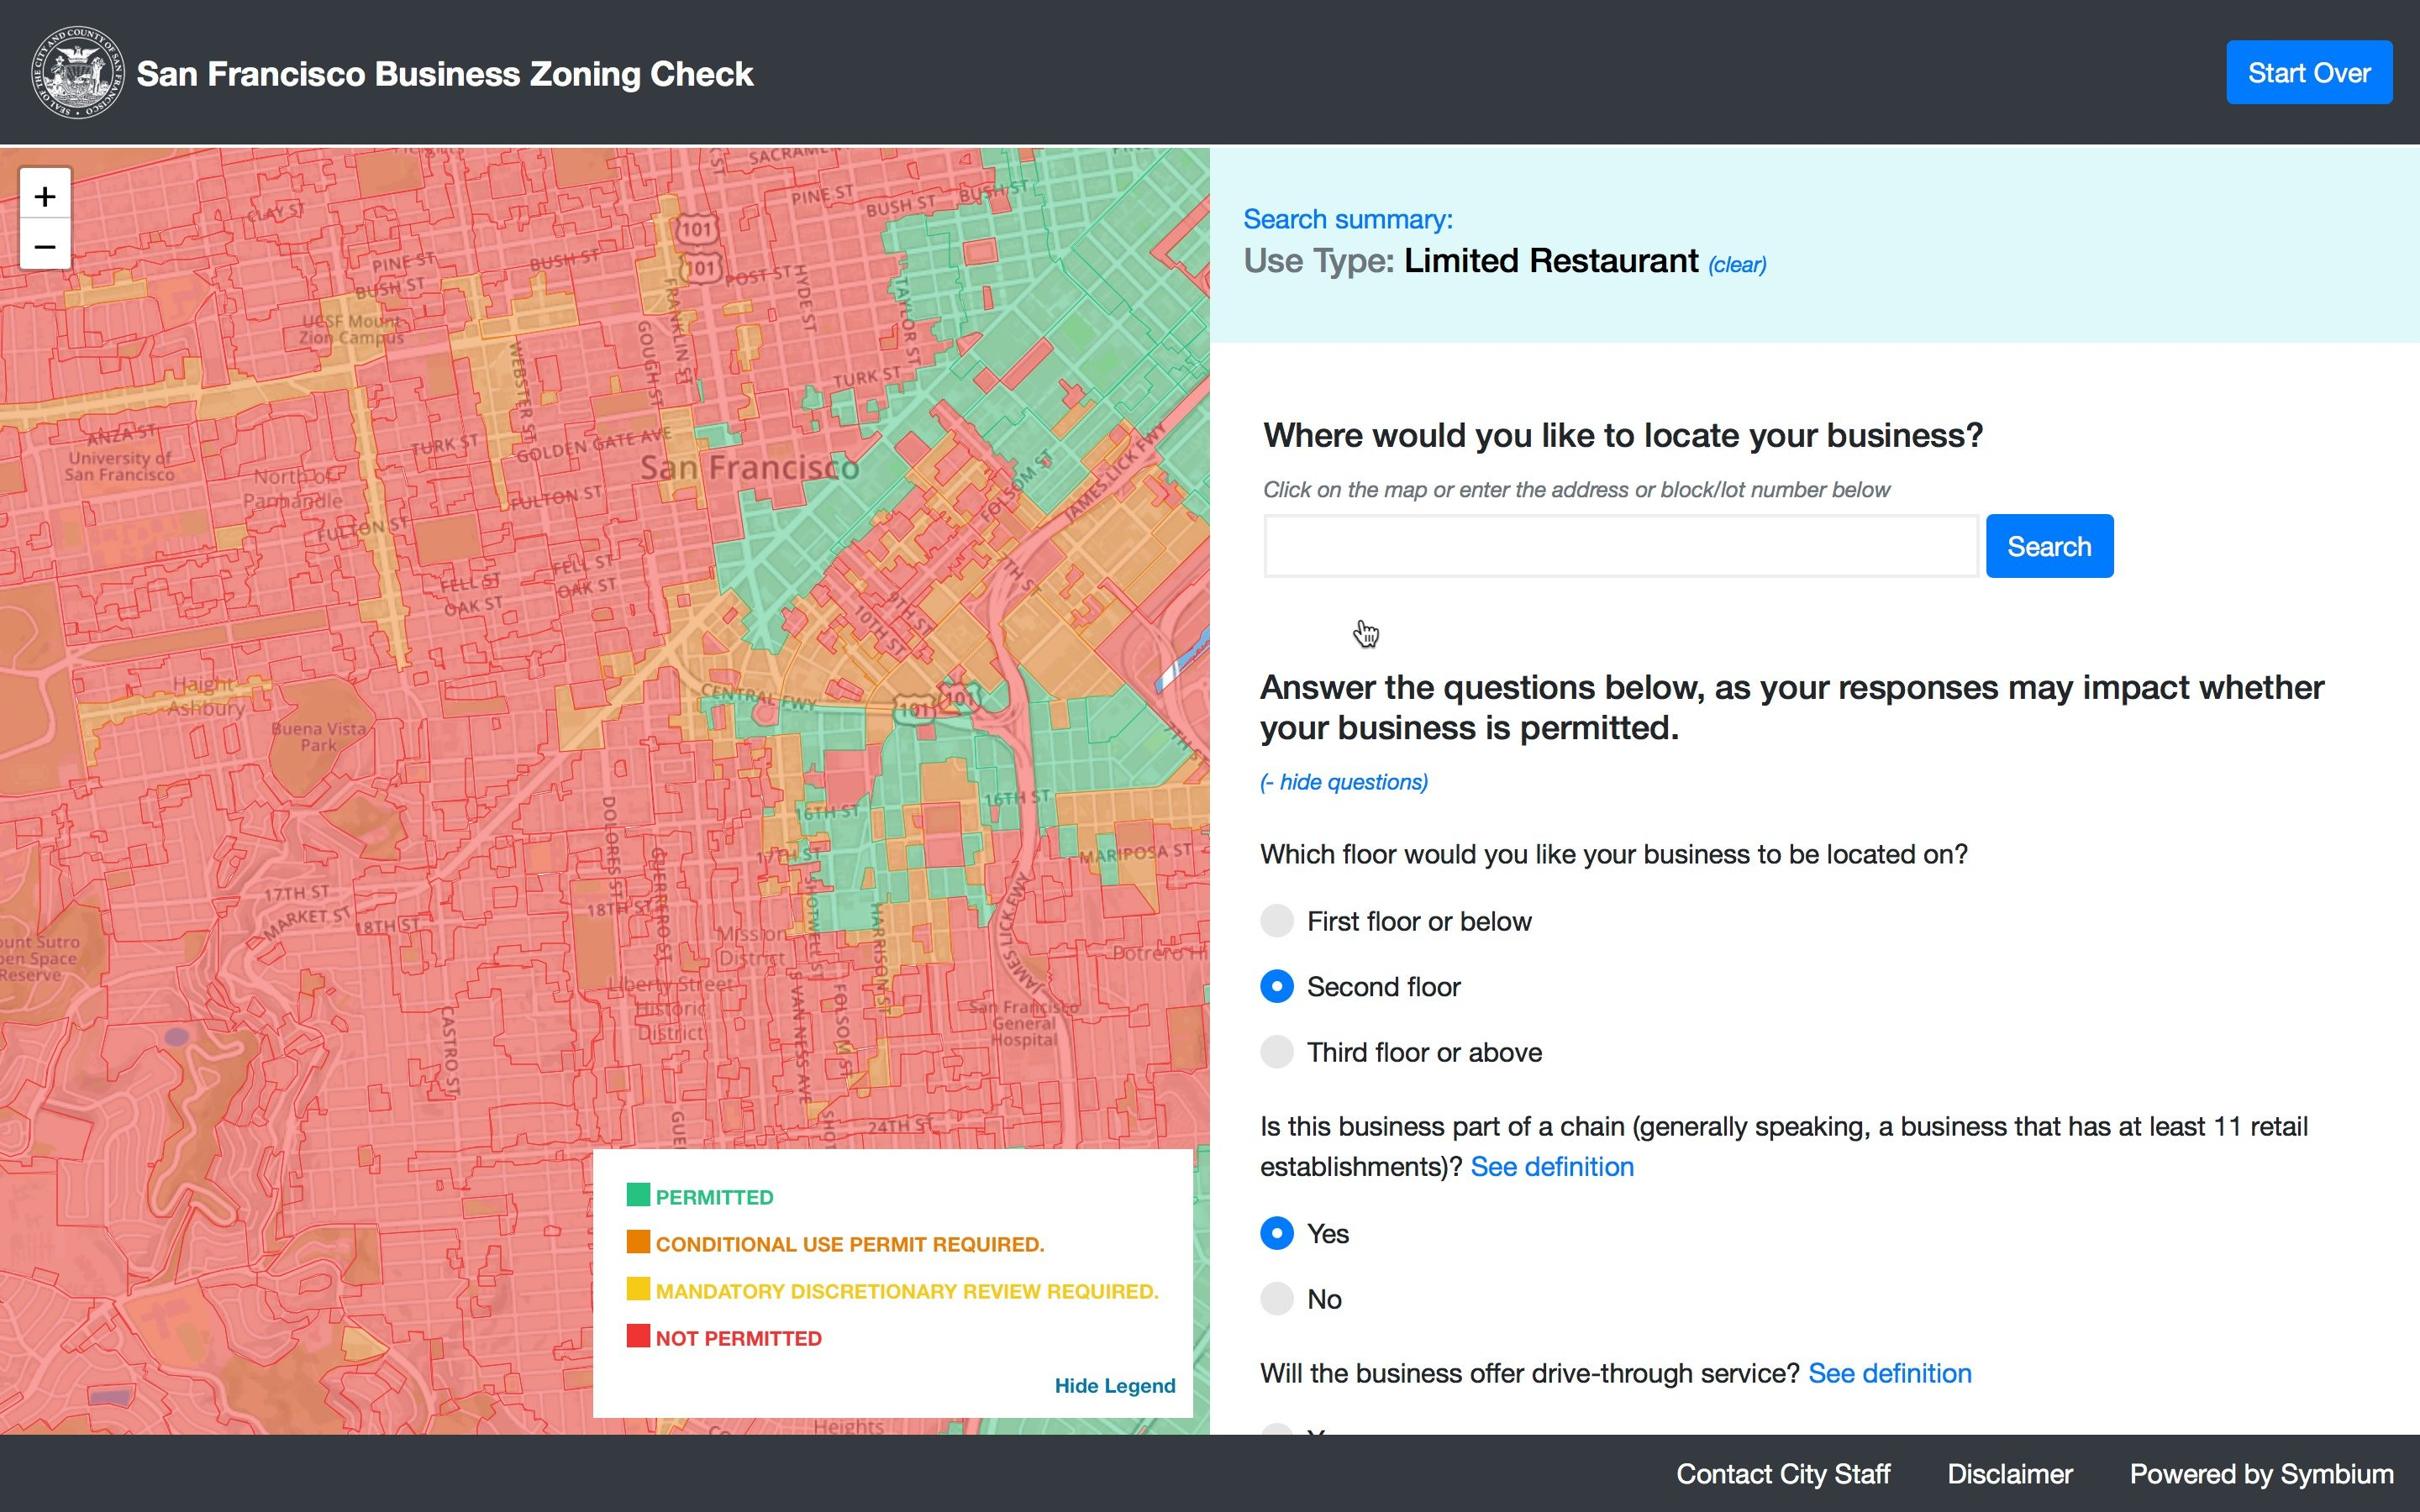 Business Zoning Check Service